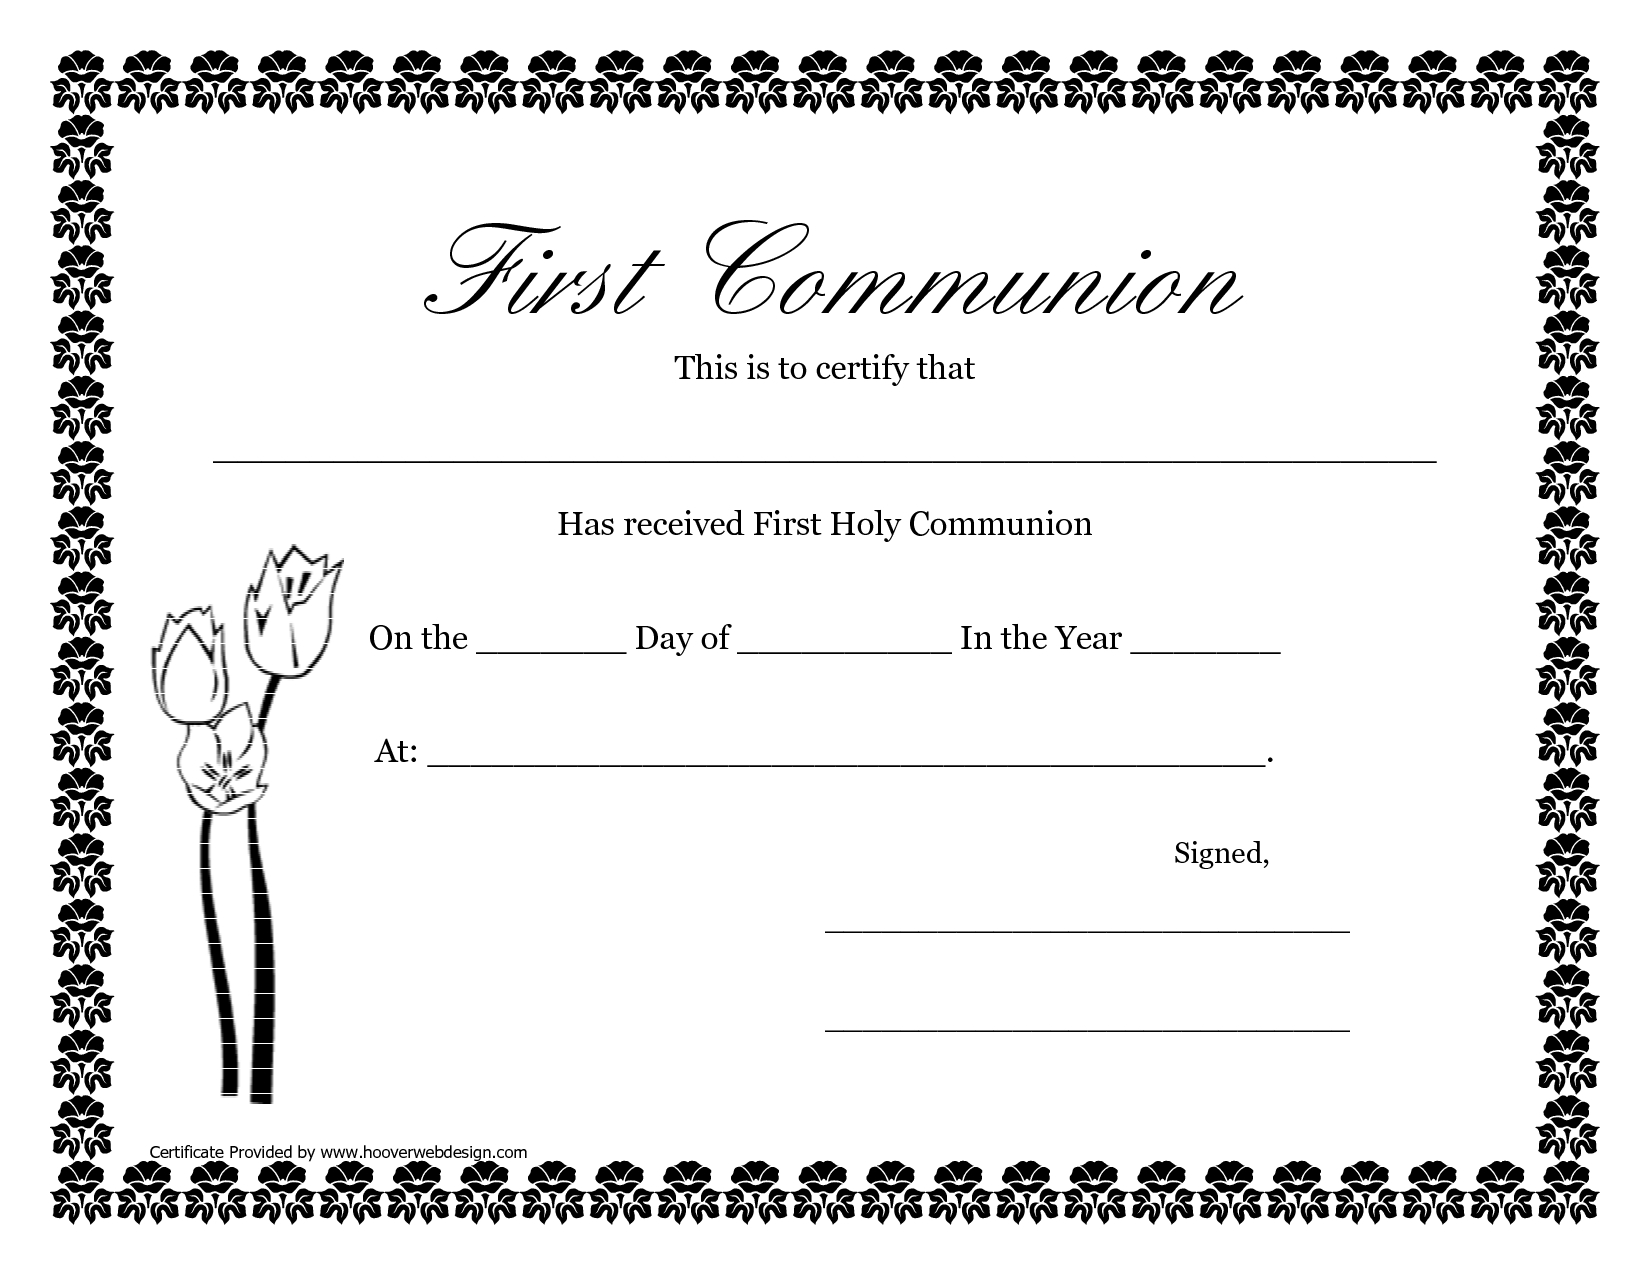 First Communion Banner Templates | Printable First Communion Intended For Free Printable First Communion Banner Templates